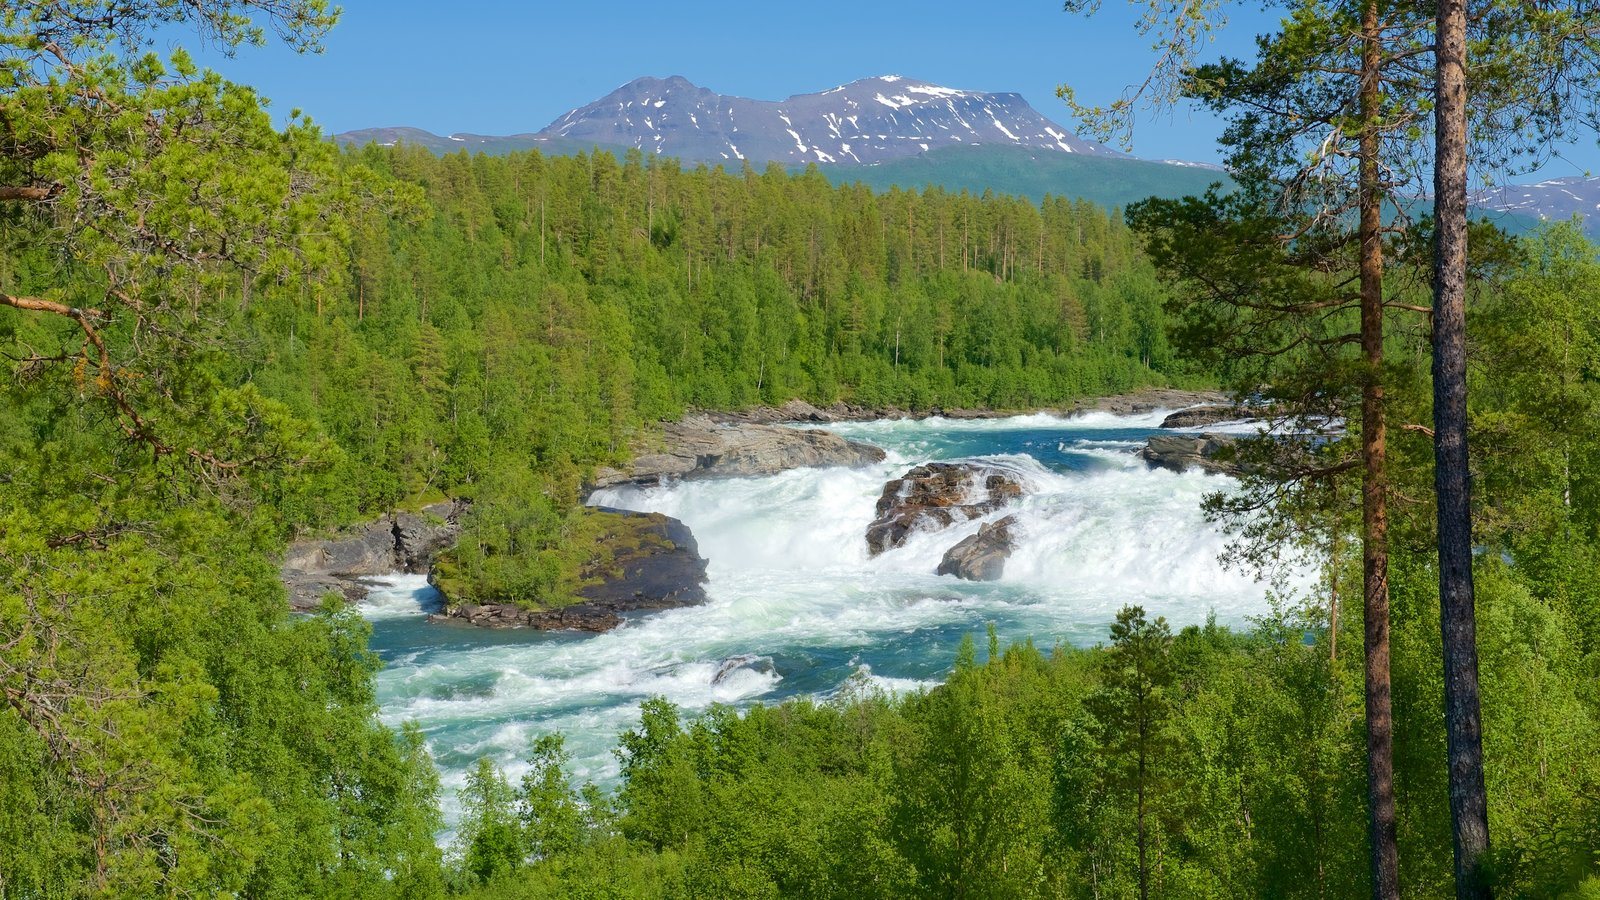 Maalselvfossen Waterfall showing forest scenes and rapids